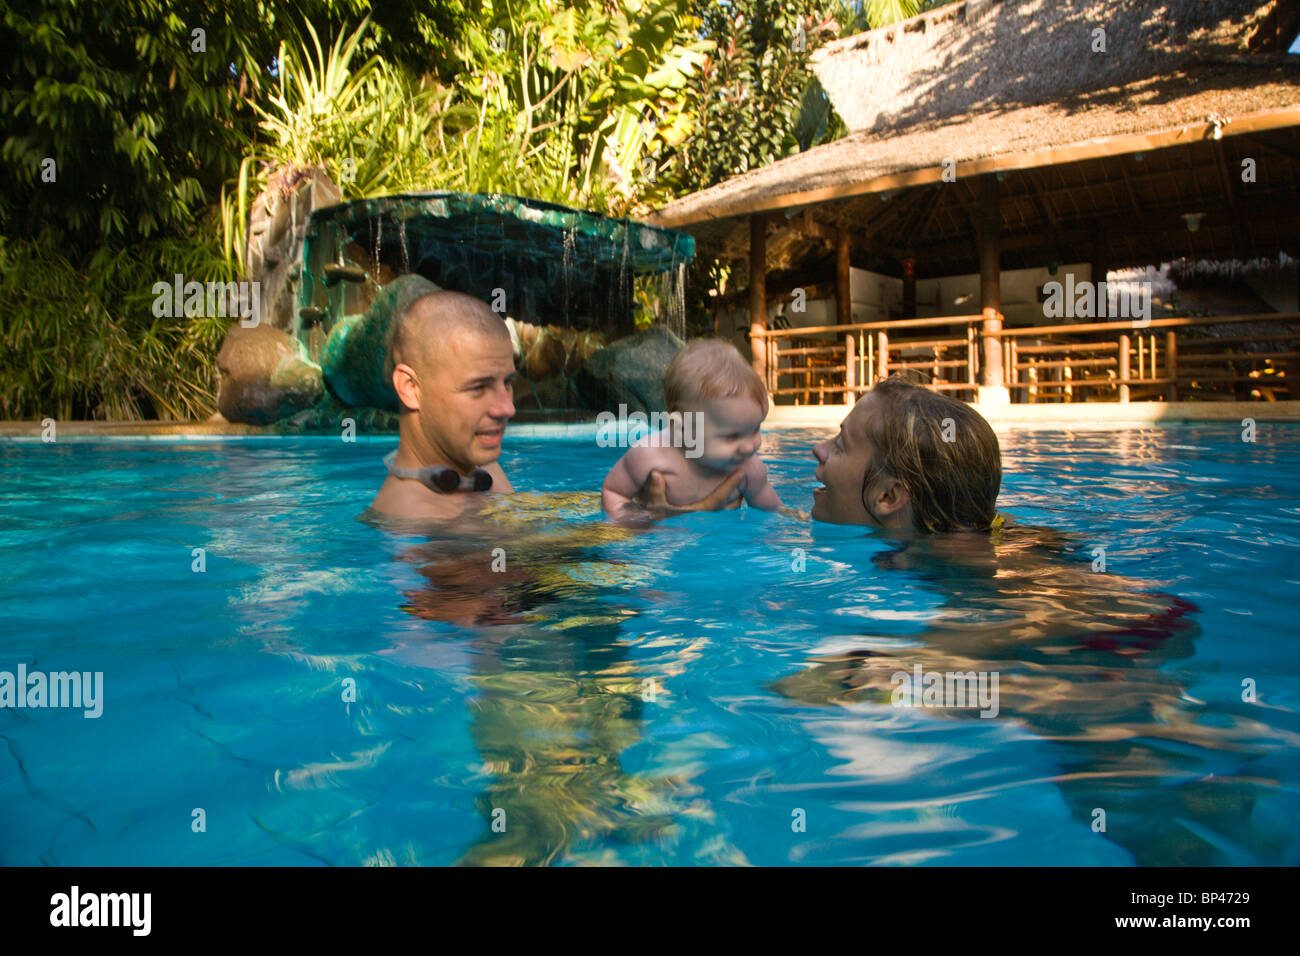 Pool resort atlantis stock photos pool resort atlantis - Hotels in dumaguete with swimming pool ...